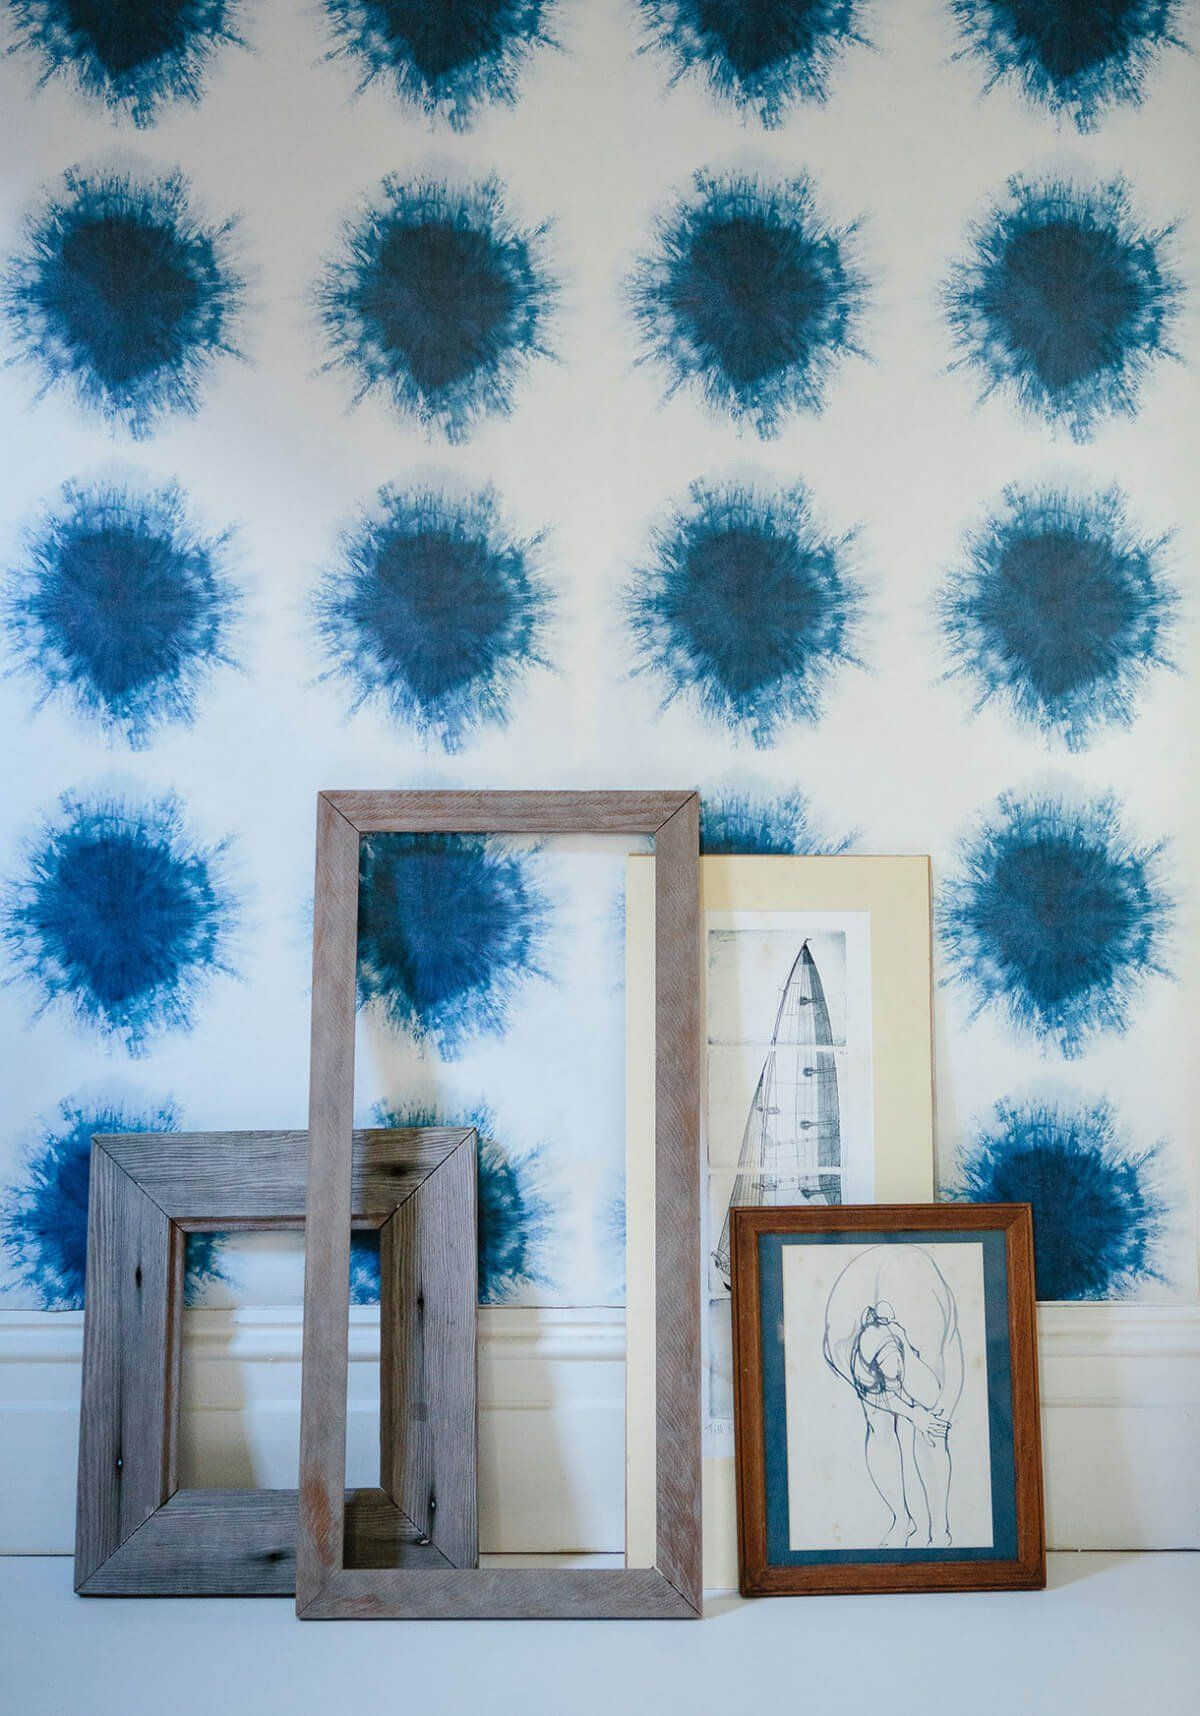 Shibori Suns Wallpaper in Indigo from the Shibori